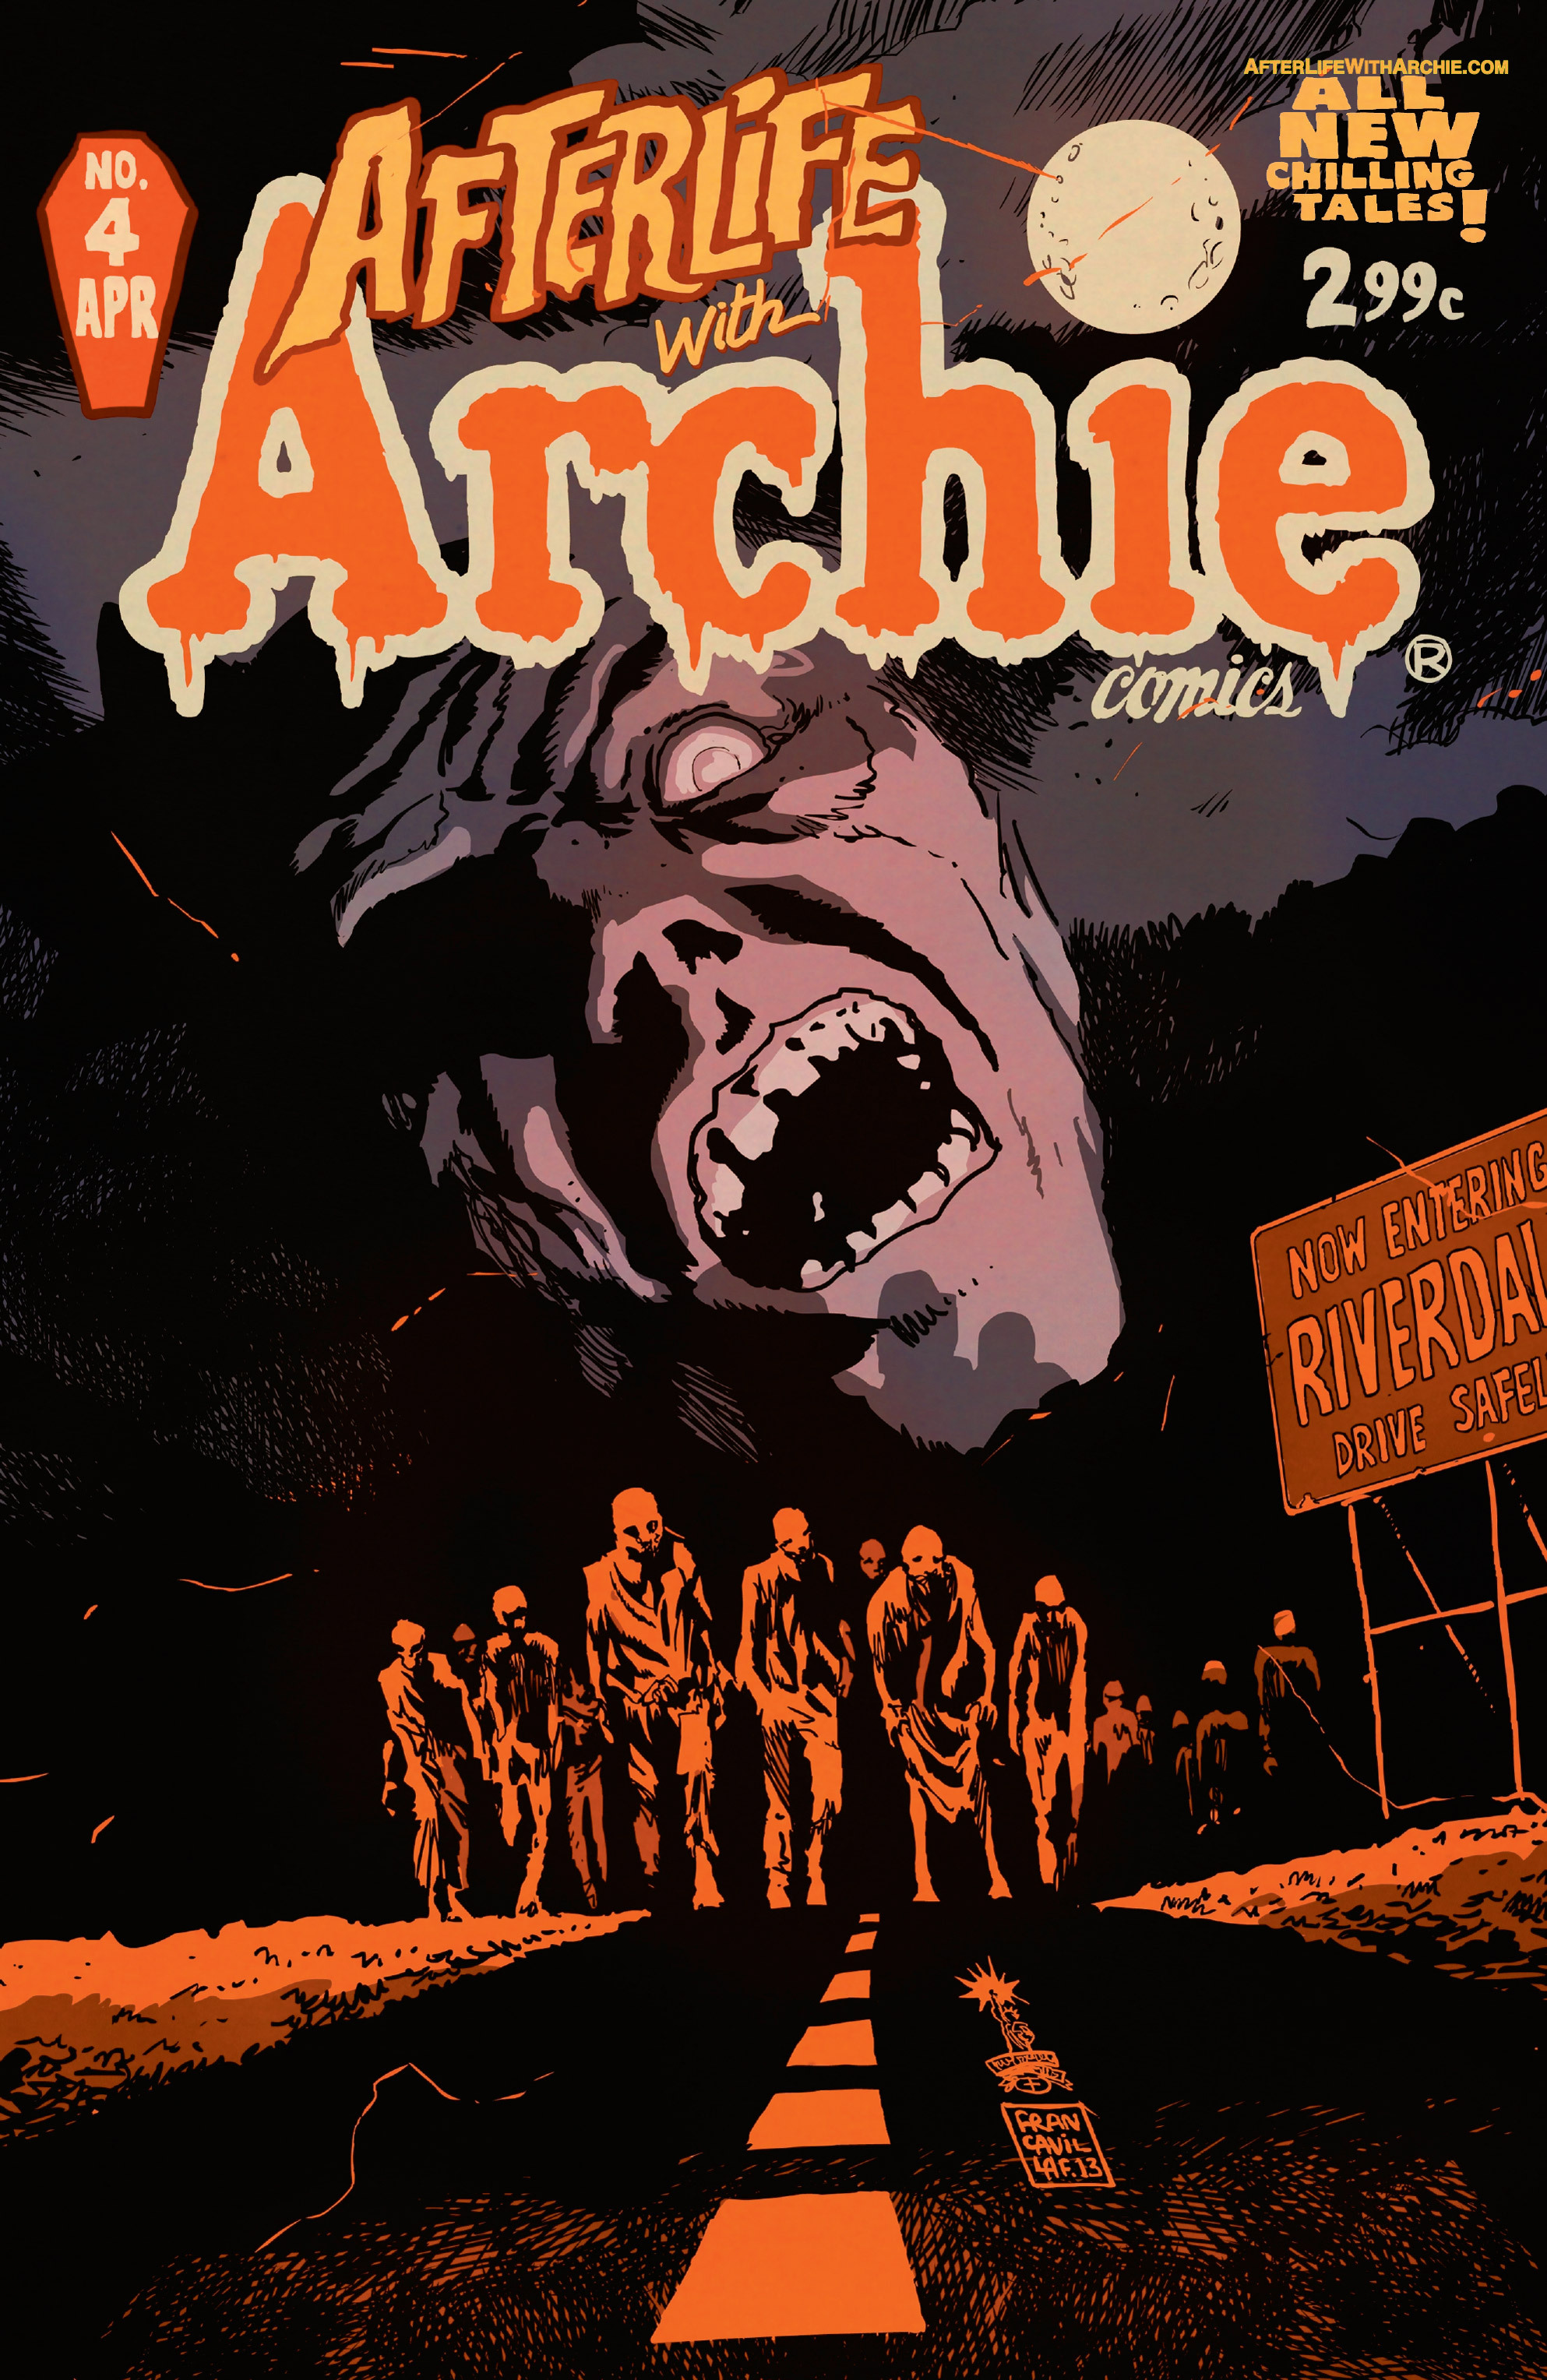 Read online Afterlife with Archie comic -  Issue #4 - 1